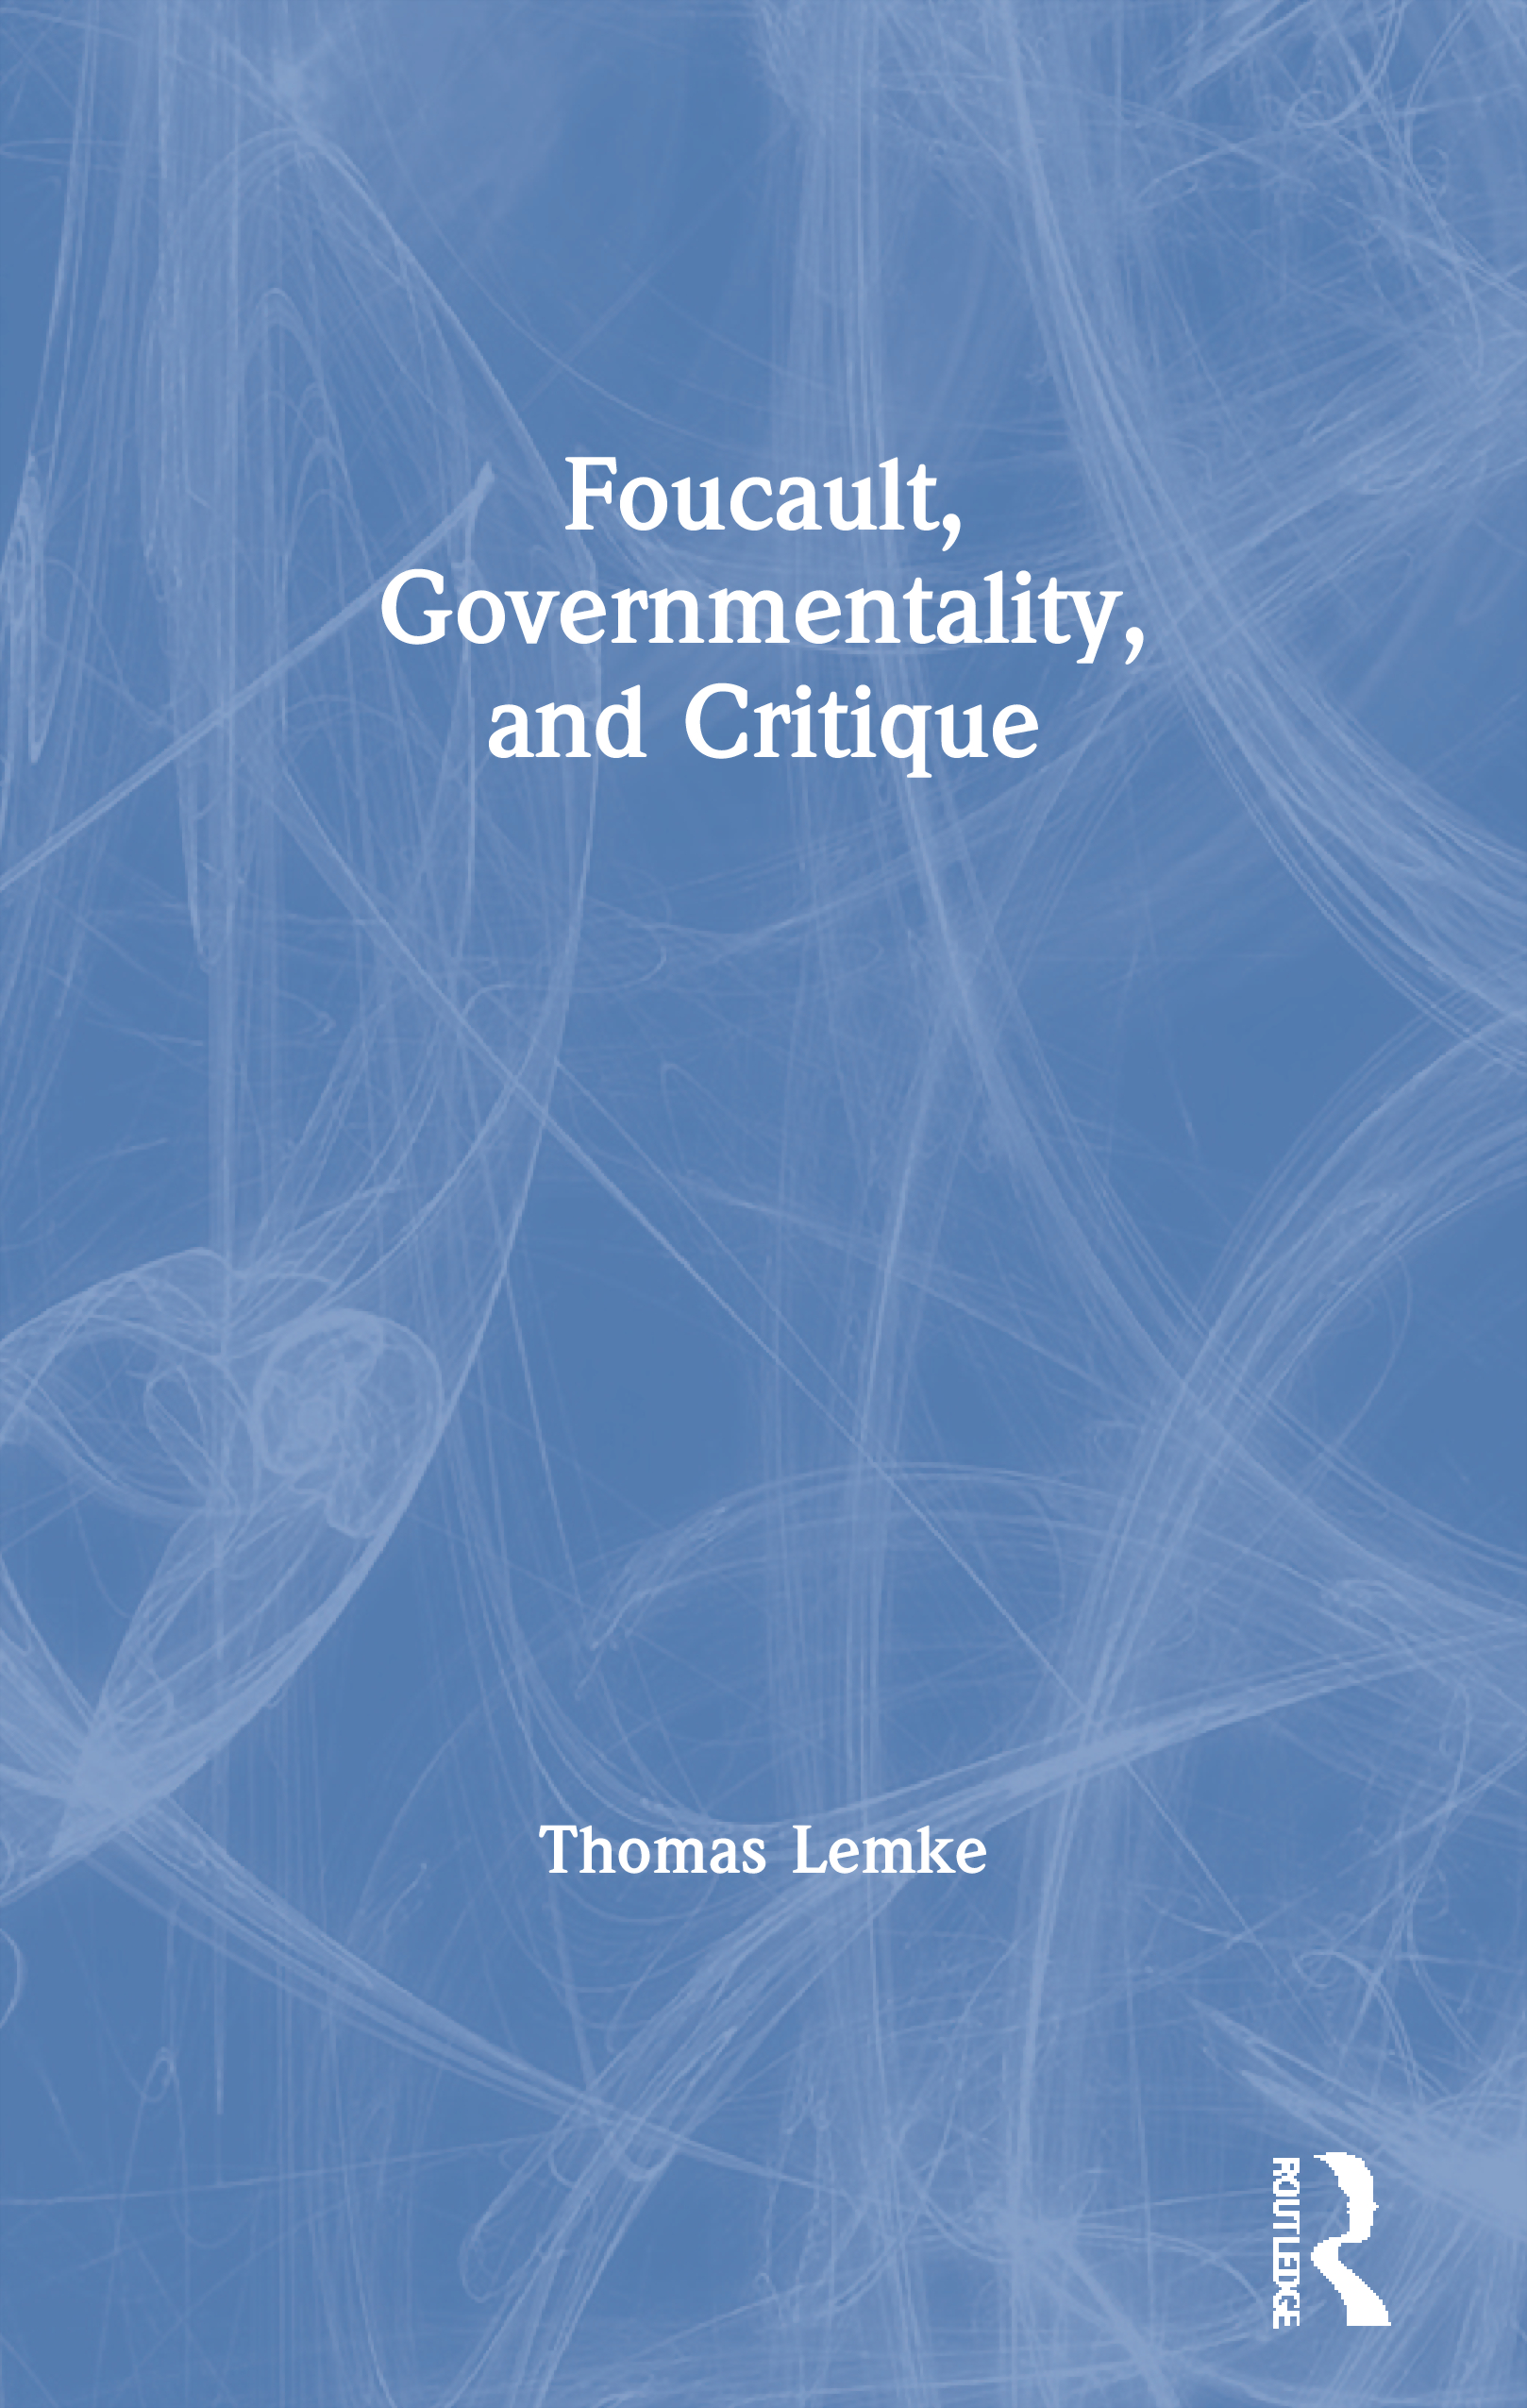 Foucault, Governmentality, and Critique